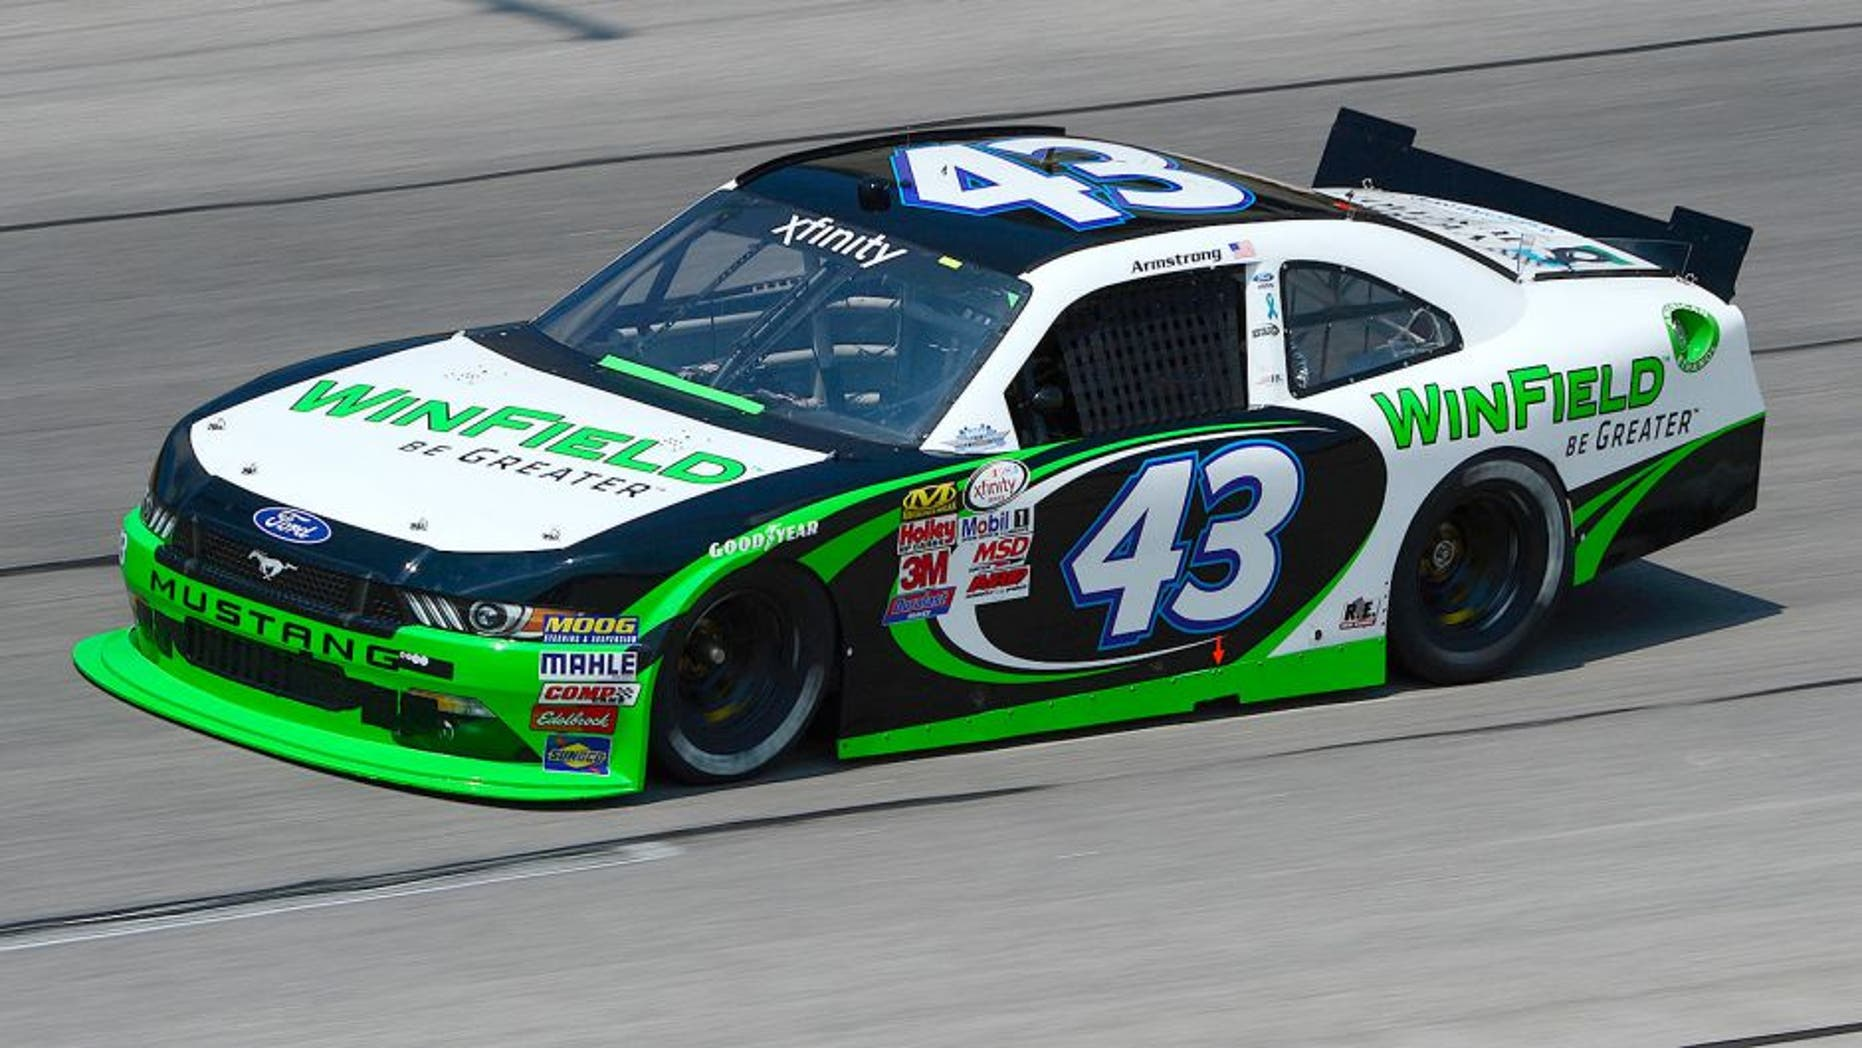 DARLINGTON, SC - SEPTEMBER 04: Dakoda Armstrong, driver of the #43 WinField Ford, practices for the NASCAR XFINITY Series VFW Sport Clips Help A Hero 200 at Darlington Raceway on September 4, 2015 in Darlington, South Carolina. (Photo by Robert Laberge/NASCAR via Getty Images)